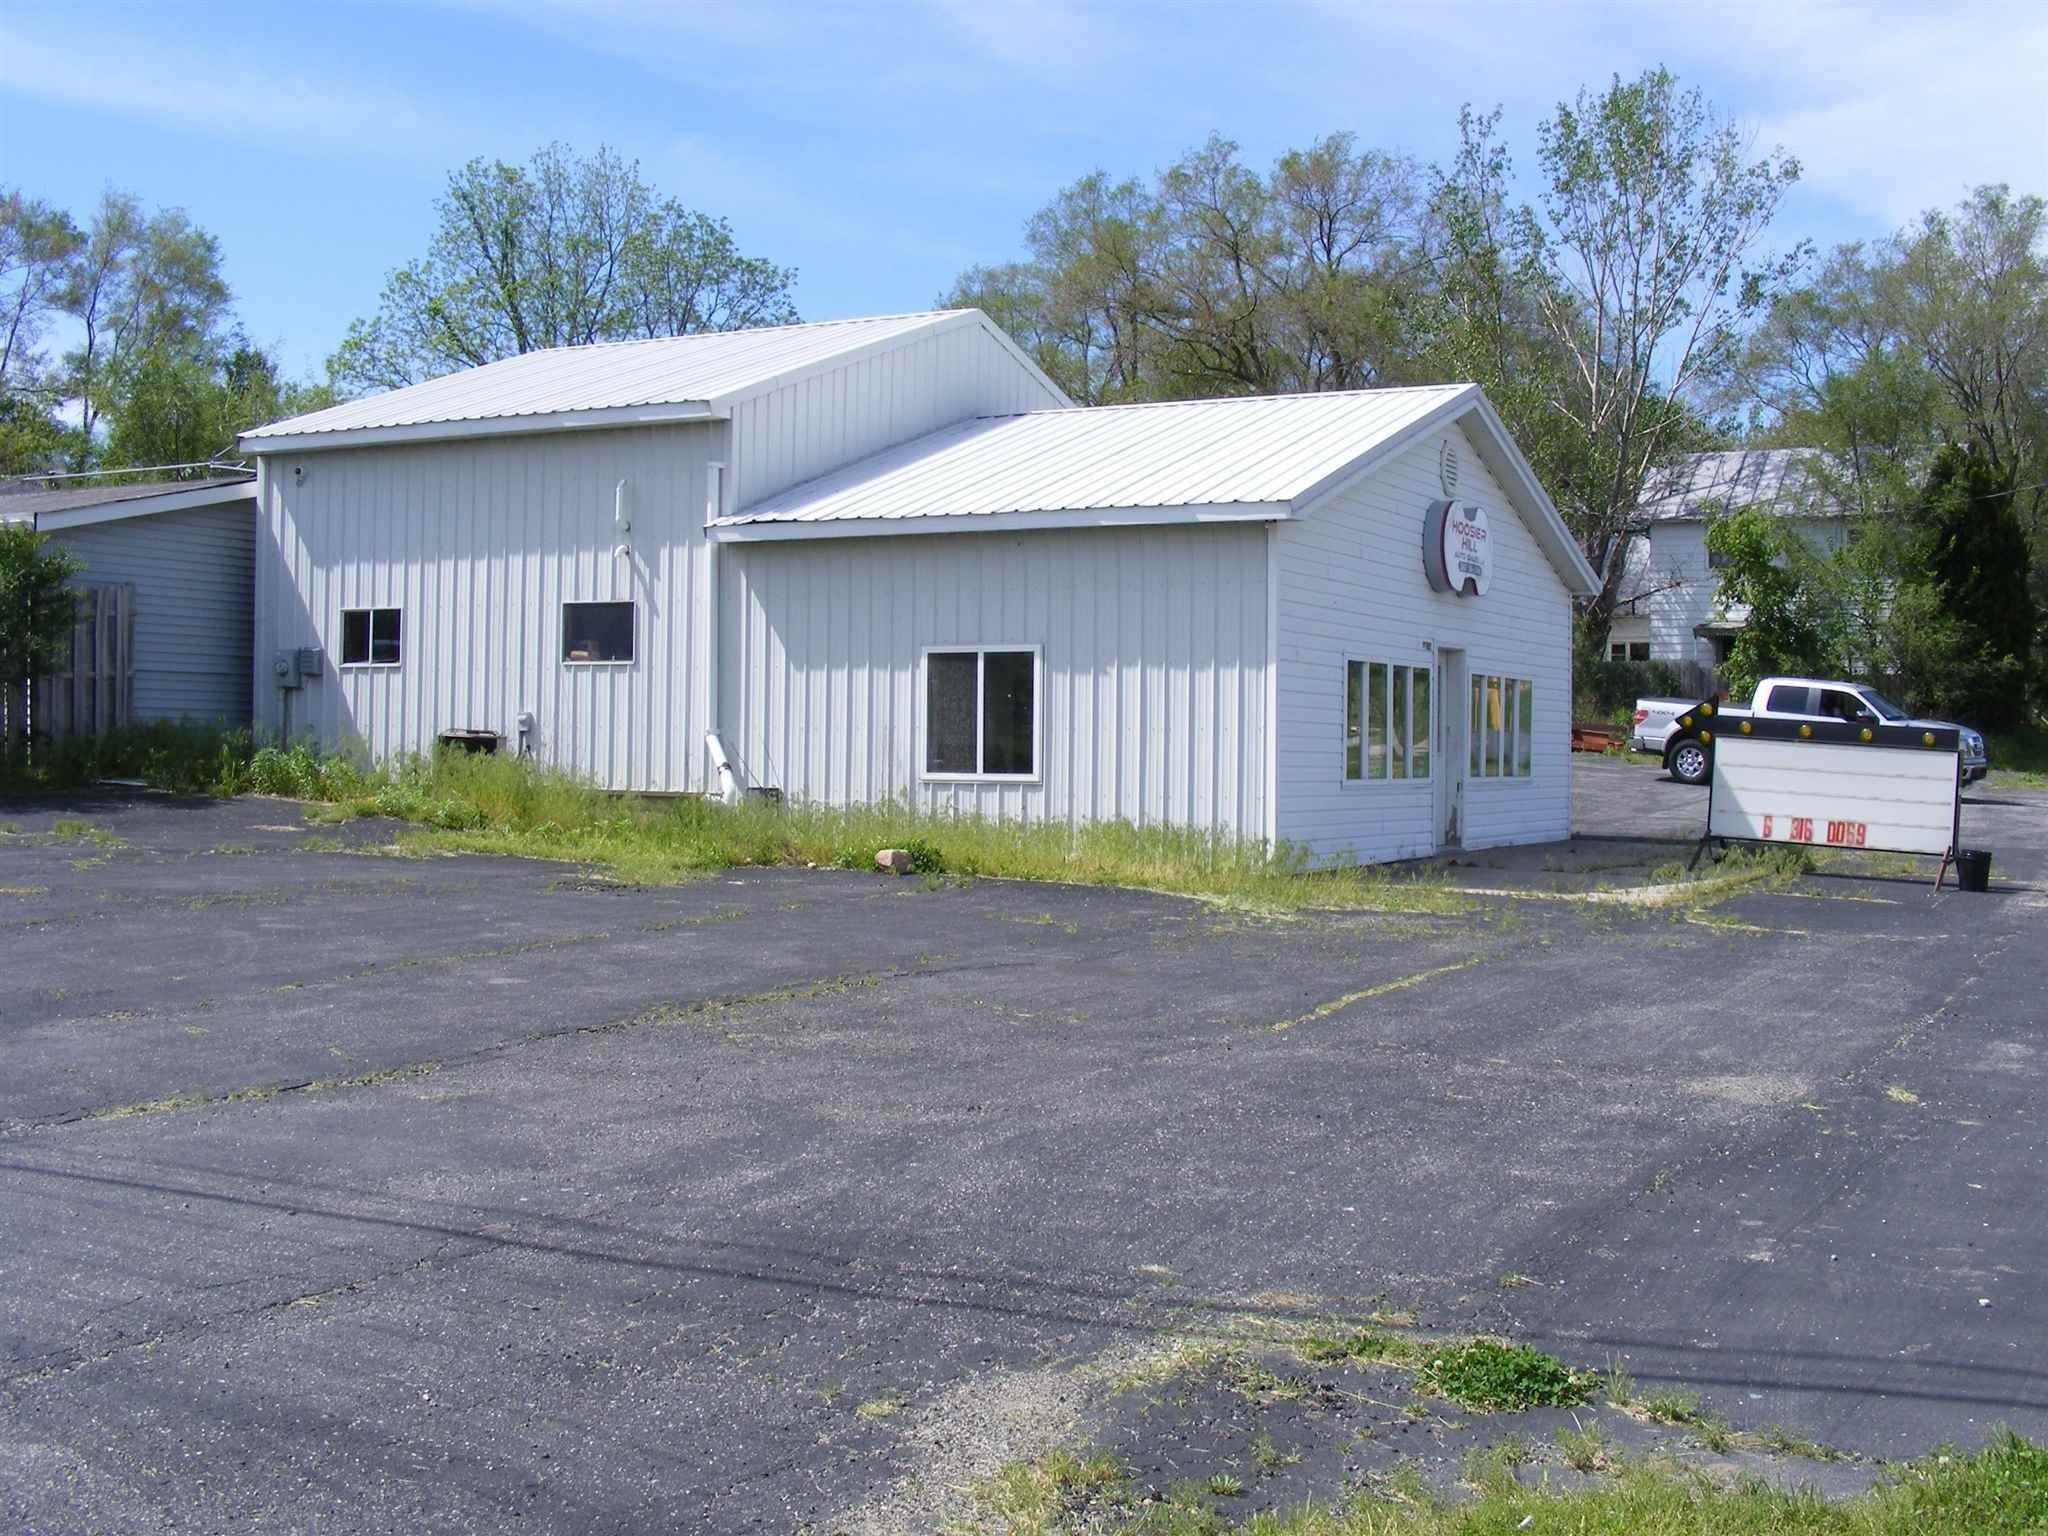 Commercial for Sale at 2785/2875 N STATE RD 127 Angola, Indiana 46703 United States